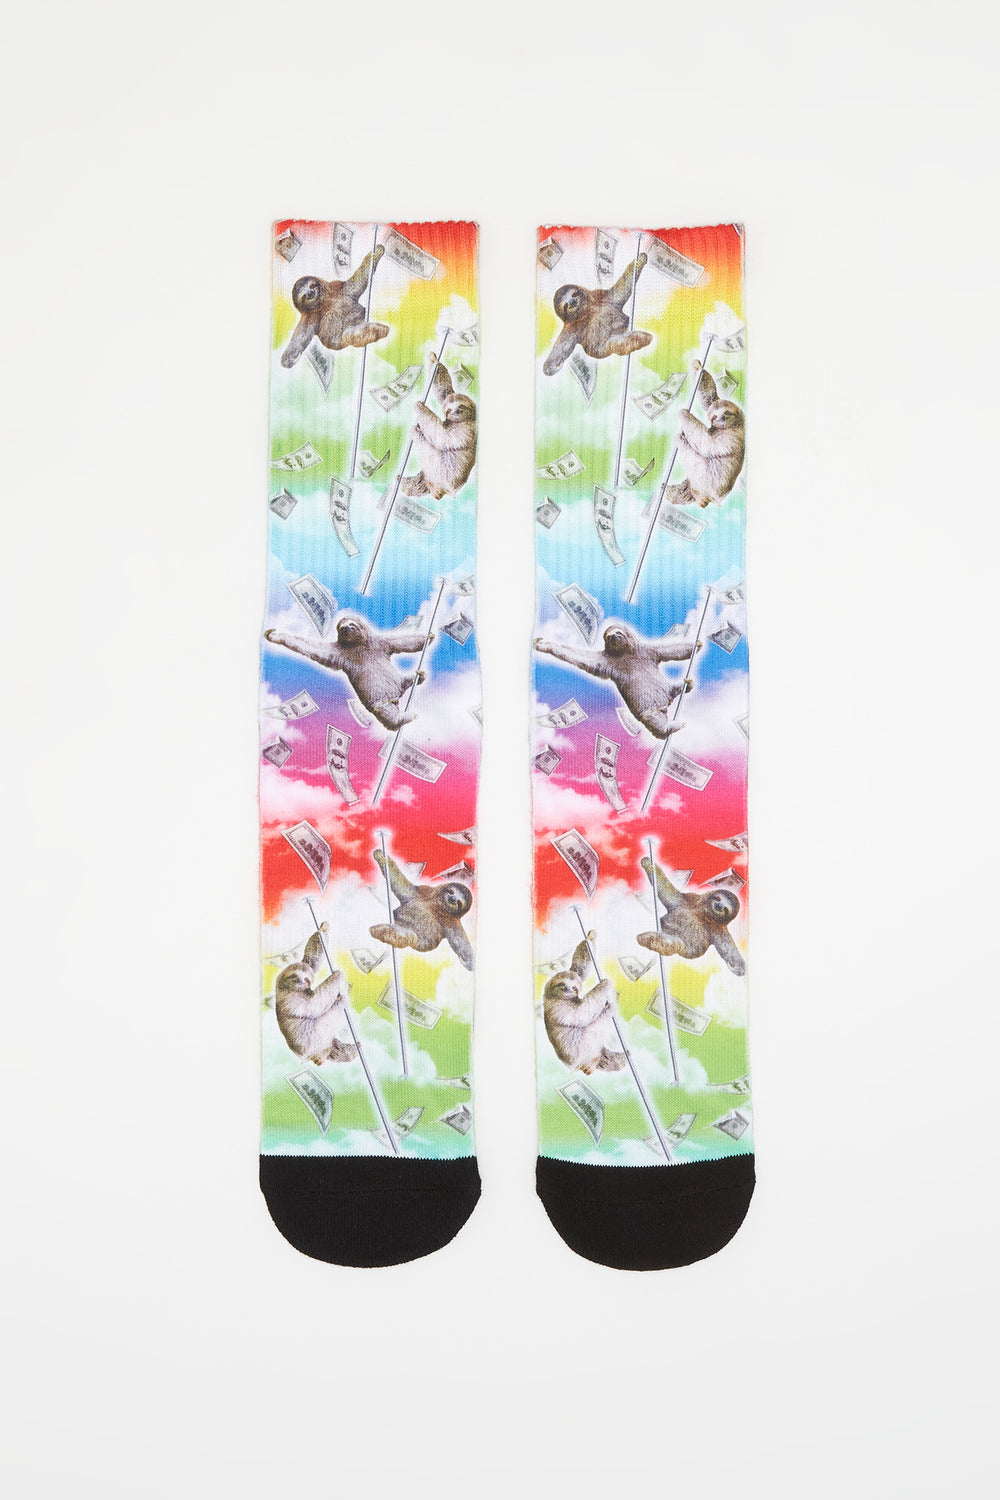 Zoo York Mens Sublimated Graphic Crew Socks Rose